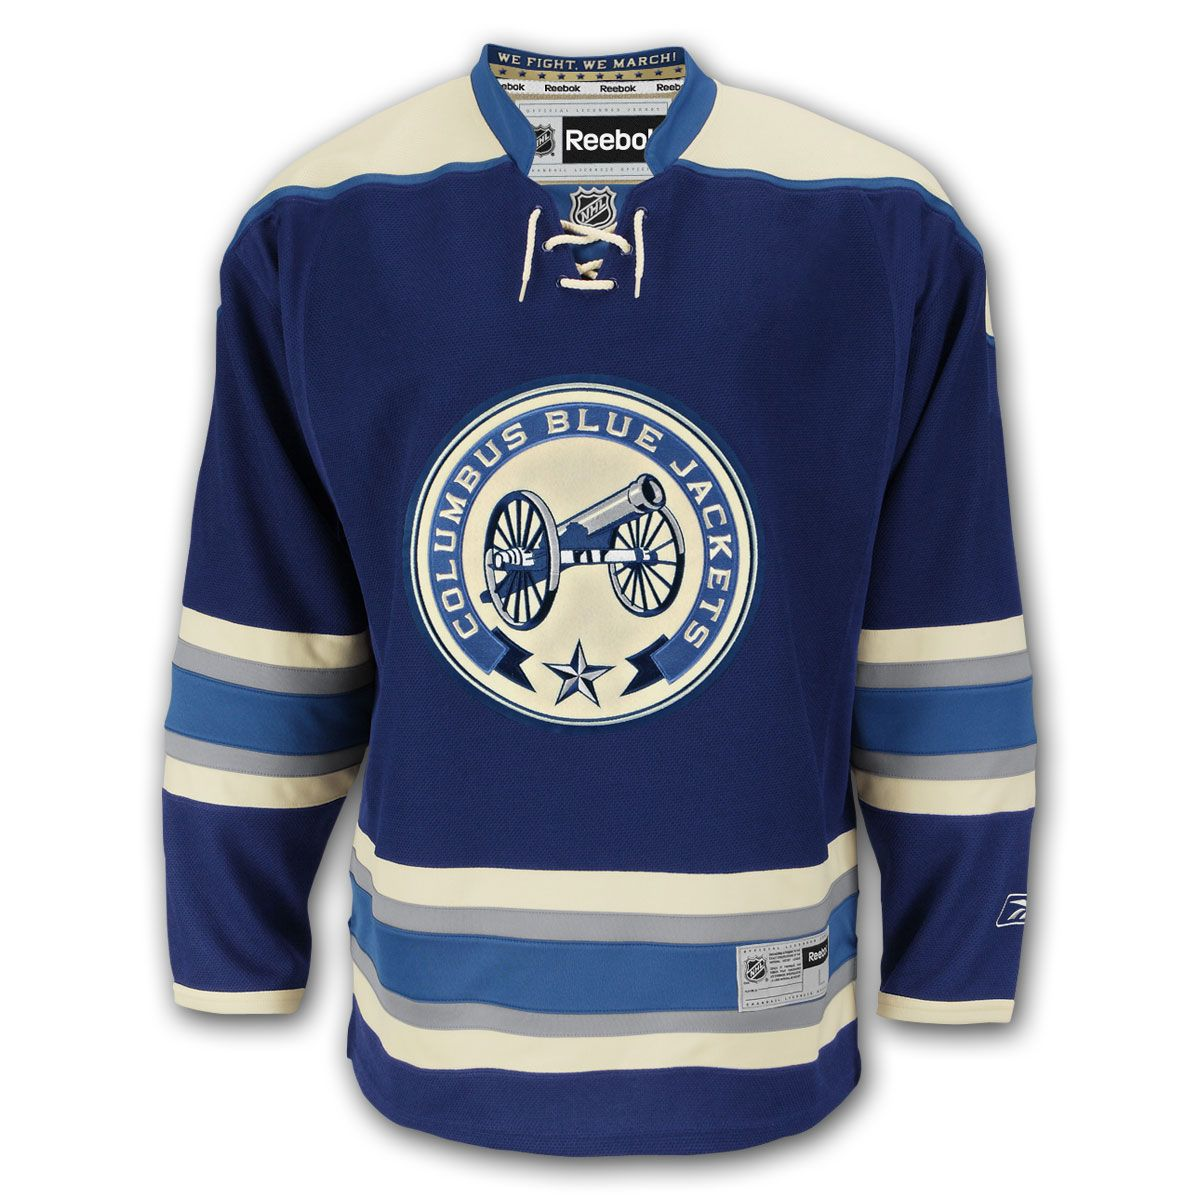 72b529a2b Columbus Blue Jackets Reebok Premier Replica Alternate NHL Hockey ...